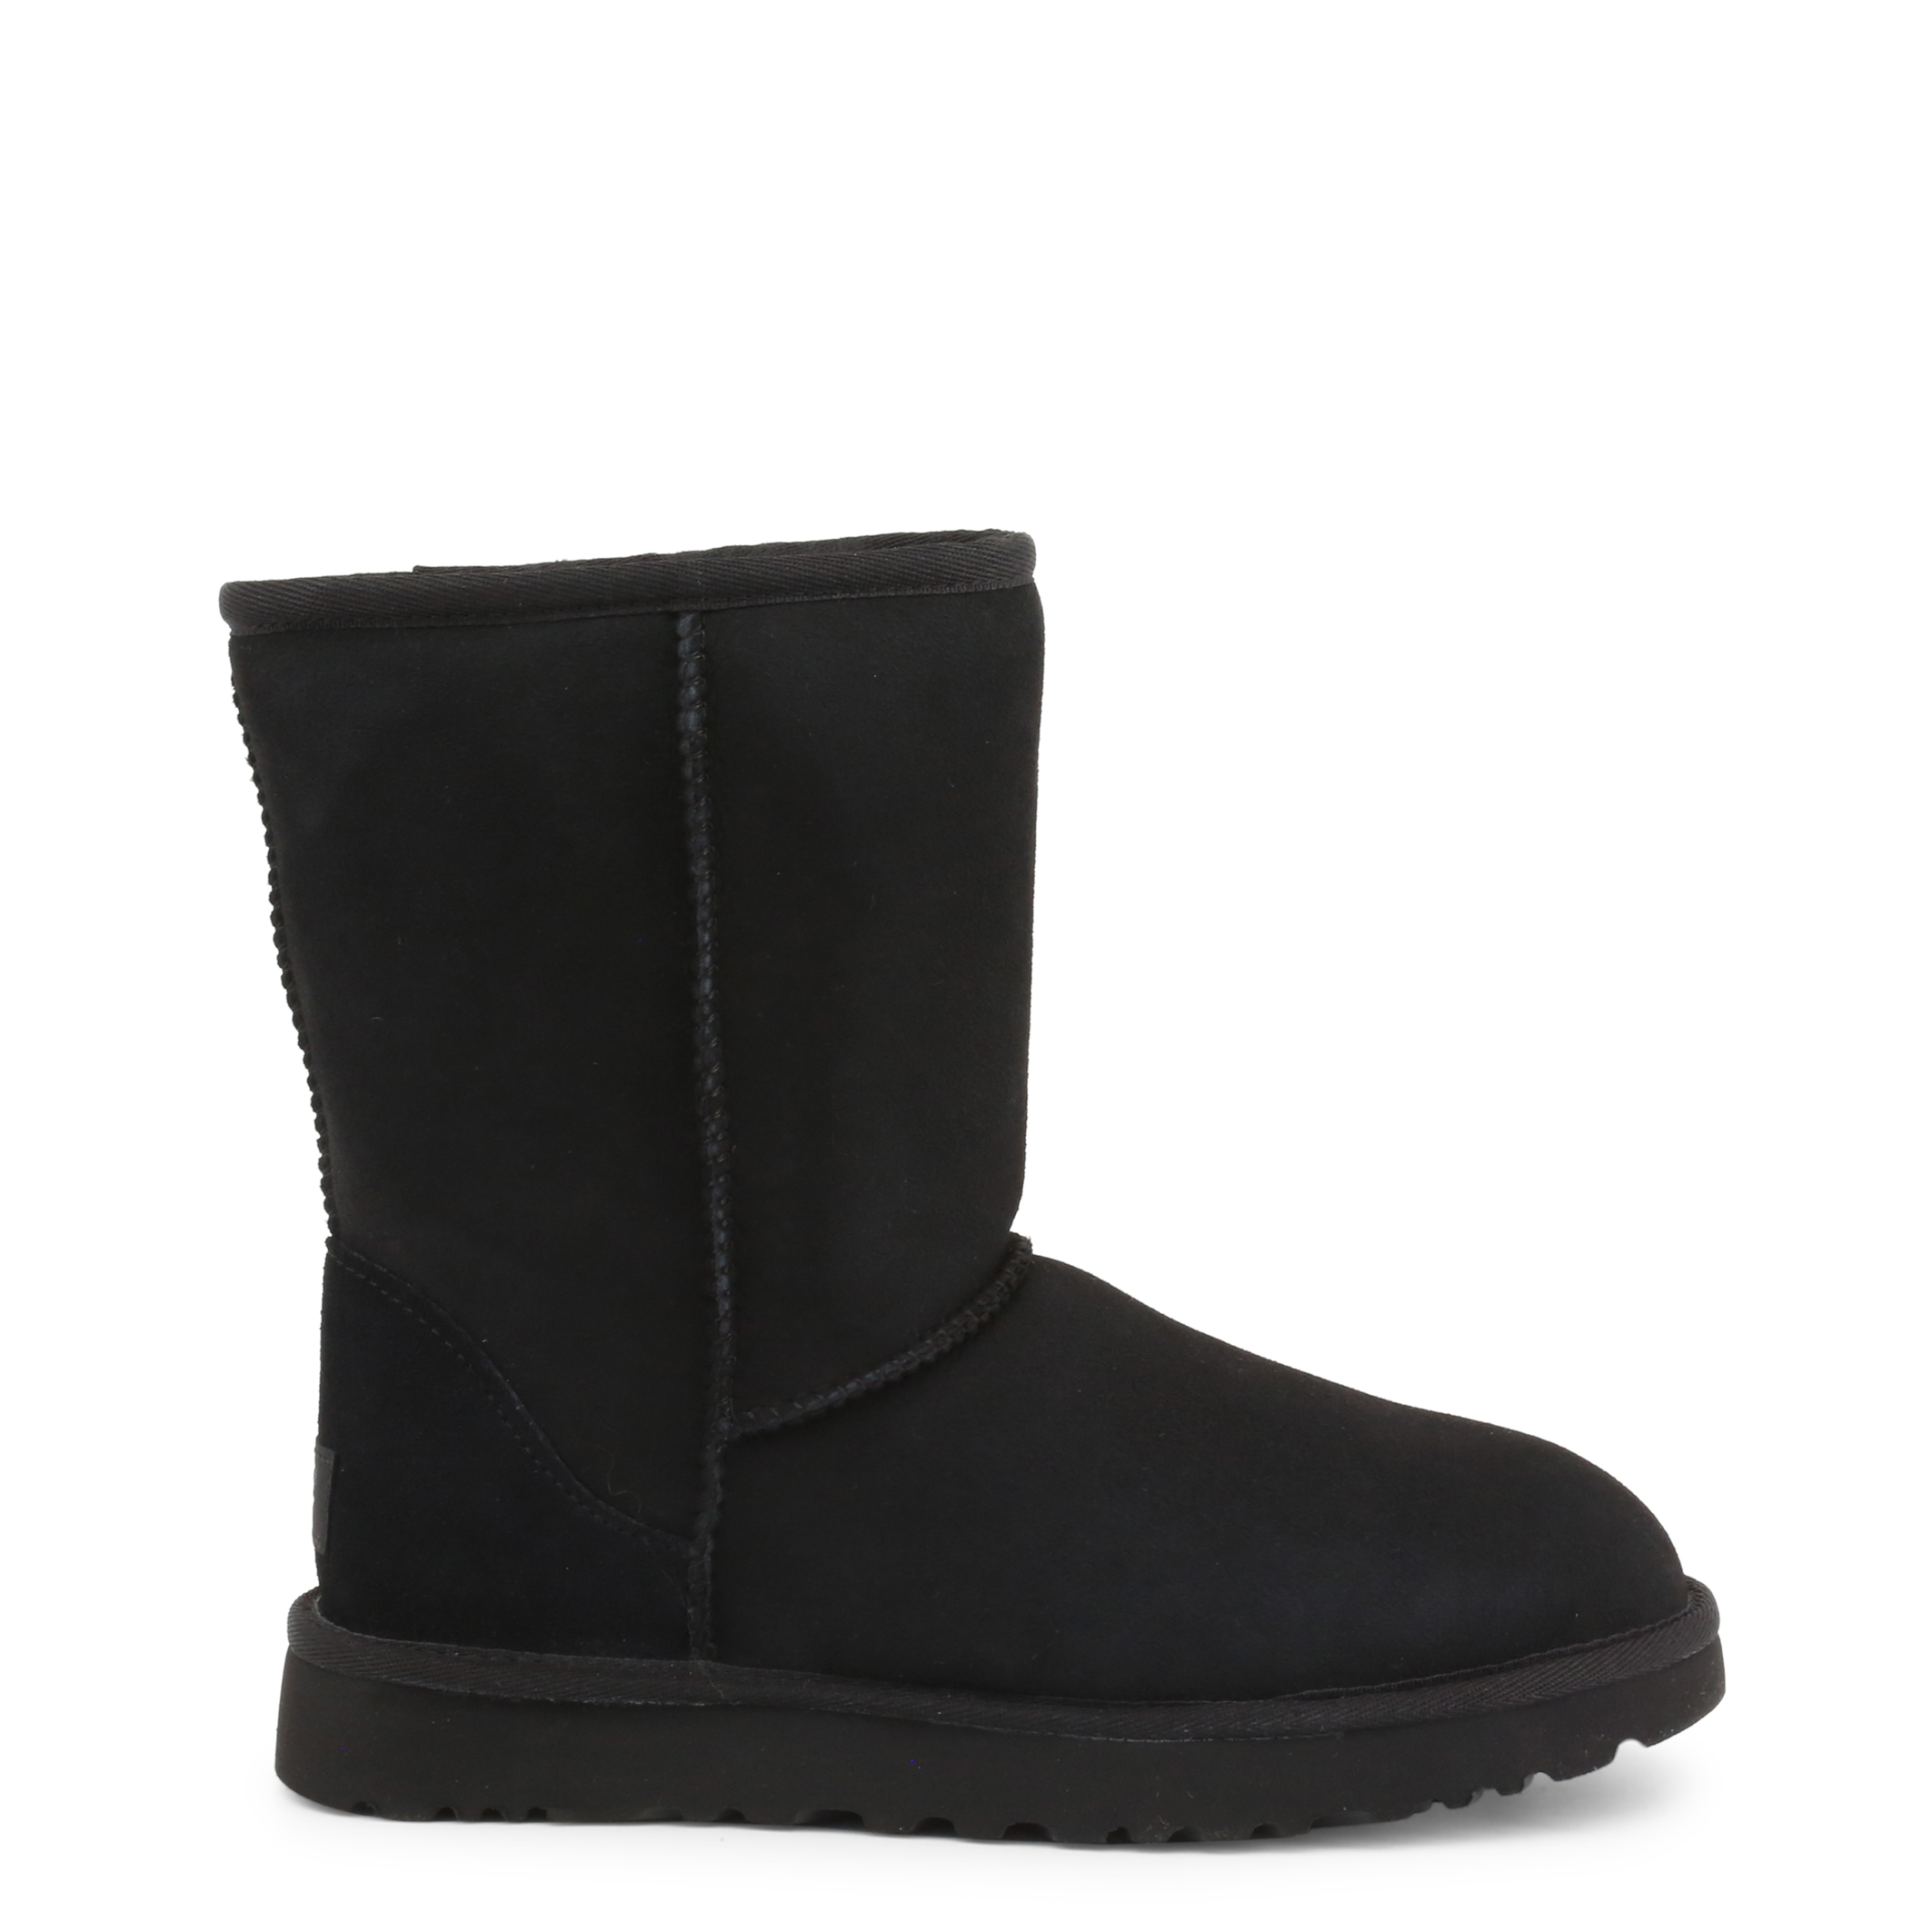 Chaussures  Ugg 1016223 black